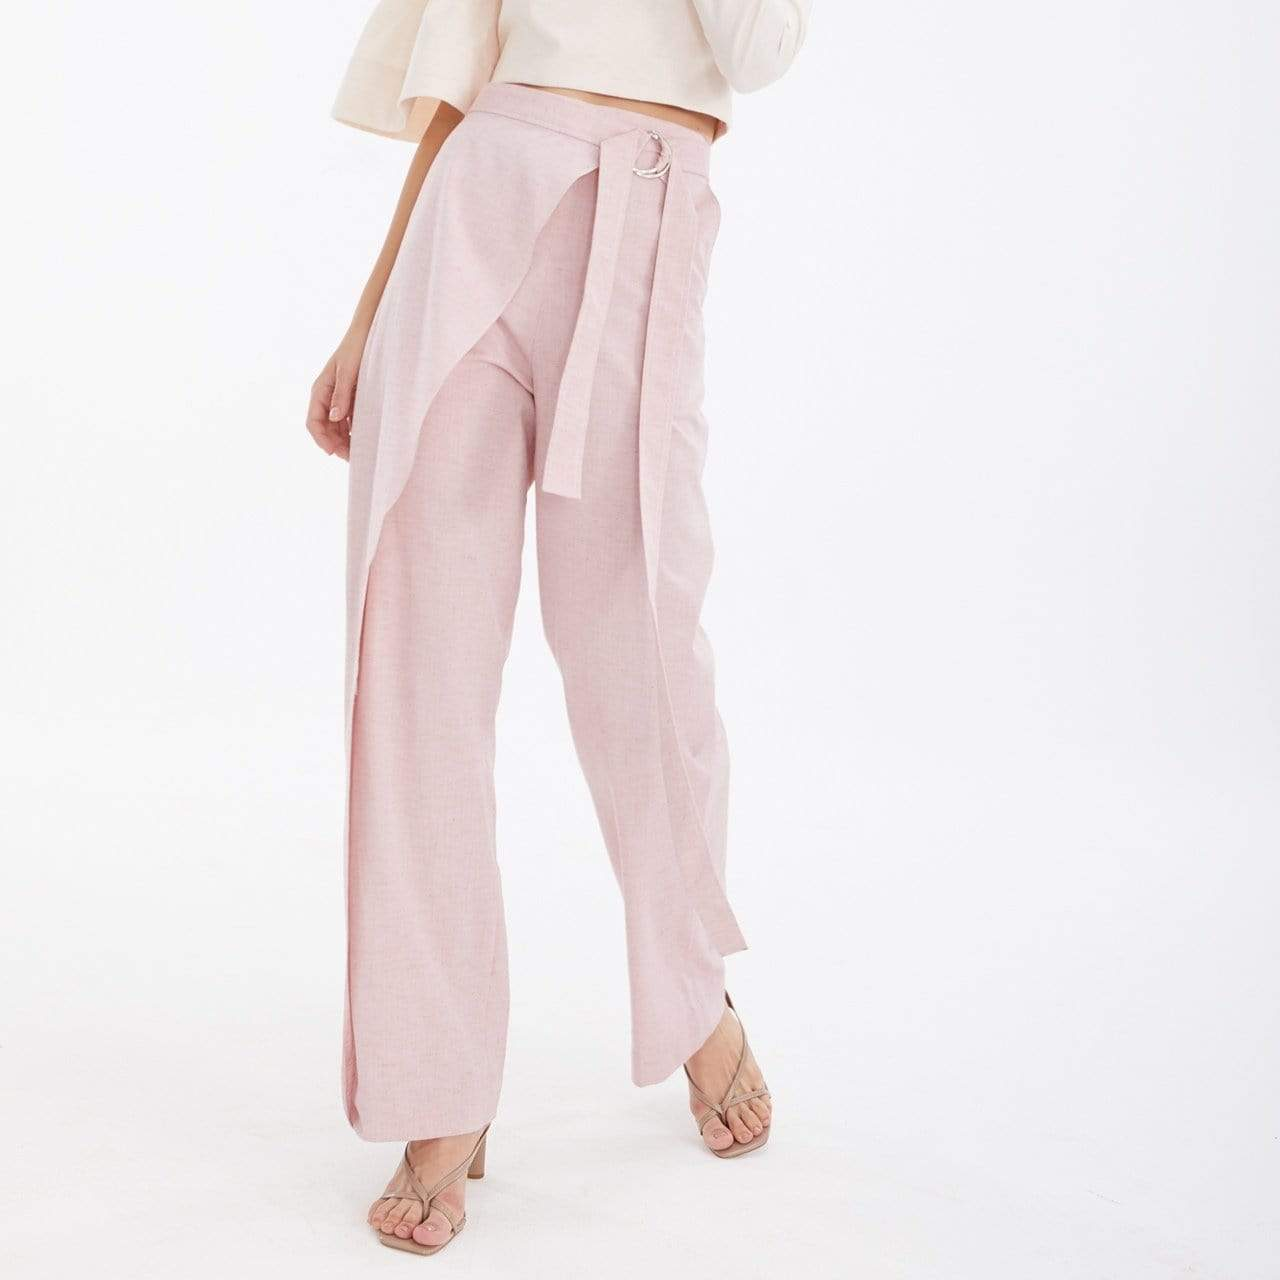 TAKTAI Pants Semi-Wraped Pants